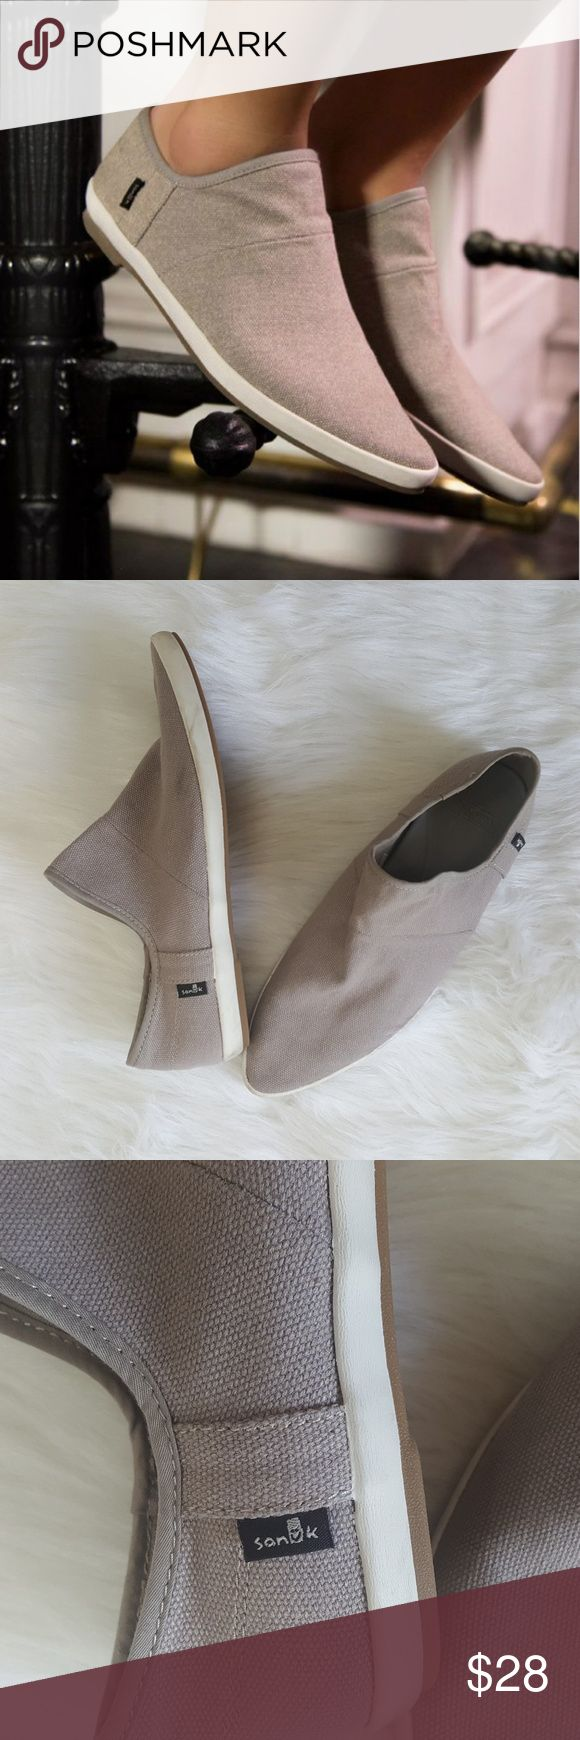 Sanuk Slip on Loafers Sanuk Slip on Loafers. Excellent used condition, worn just a few times. Minimal smudges on the white sides. Pointed toe, relatively narrow. Light grey. Sanuk Shoes Flats & Loafers